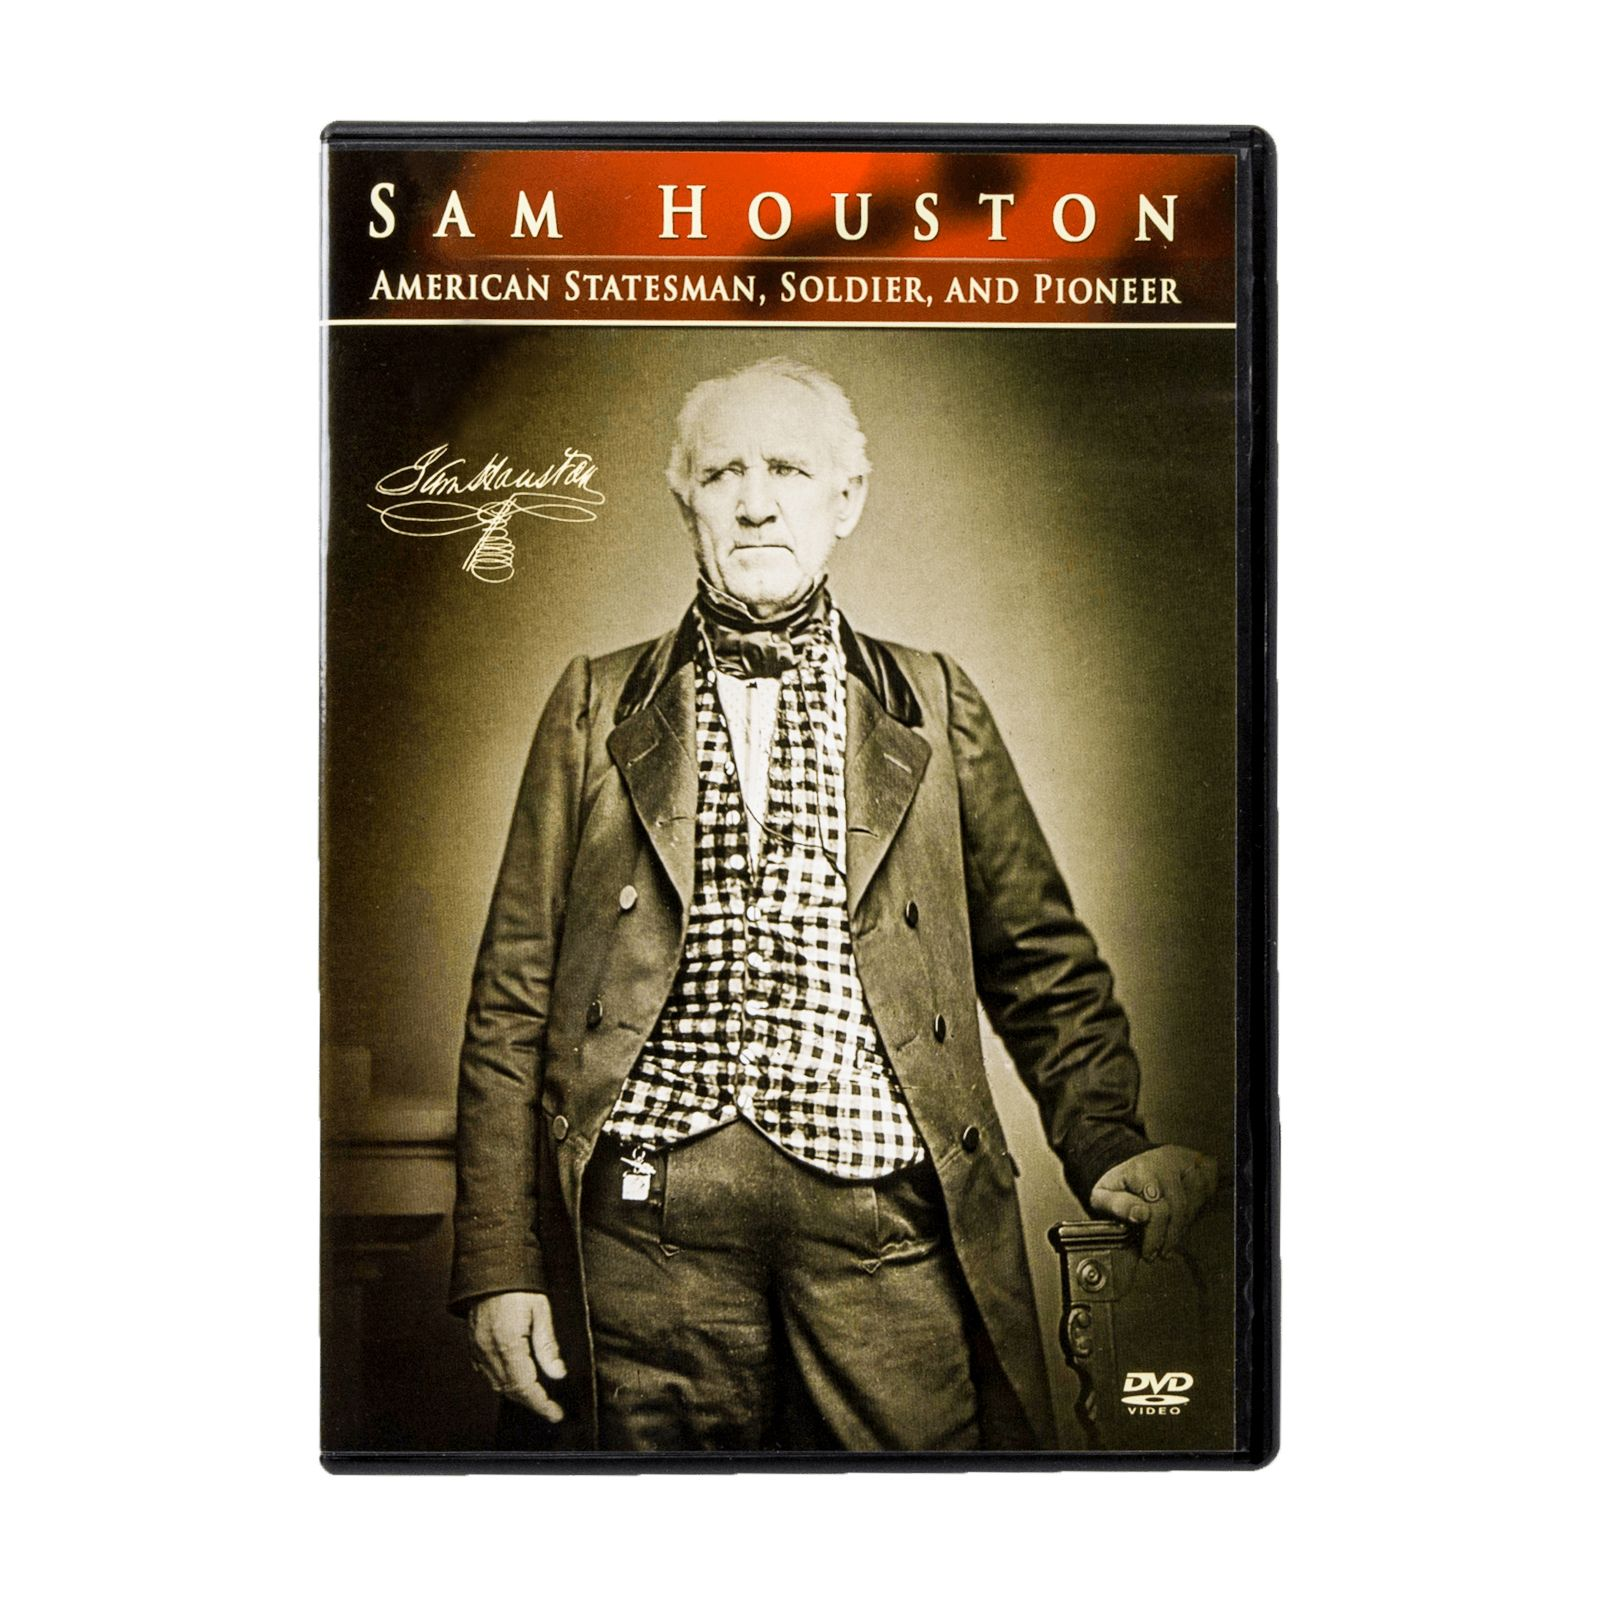 Sam Houston DVD